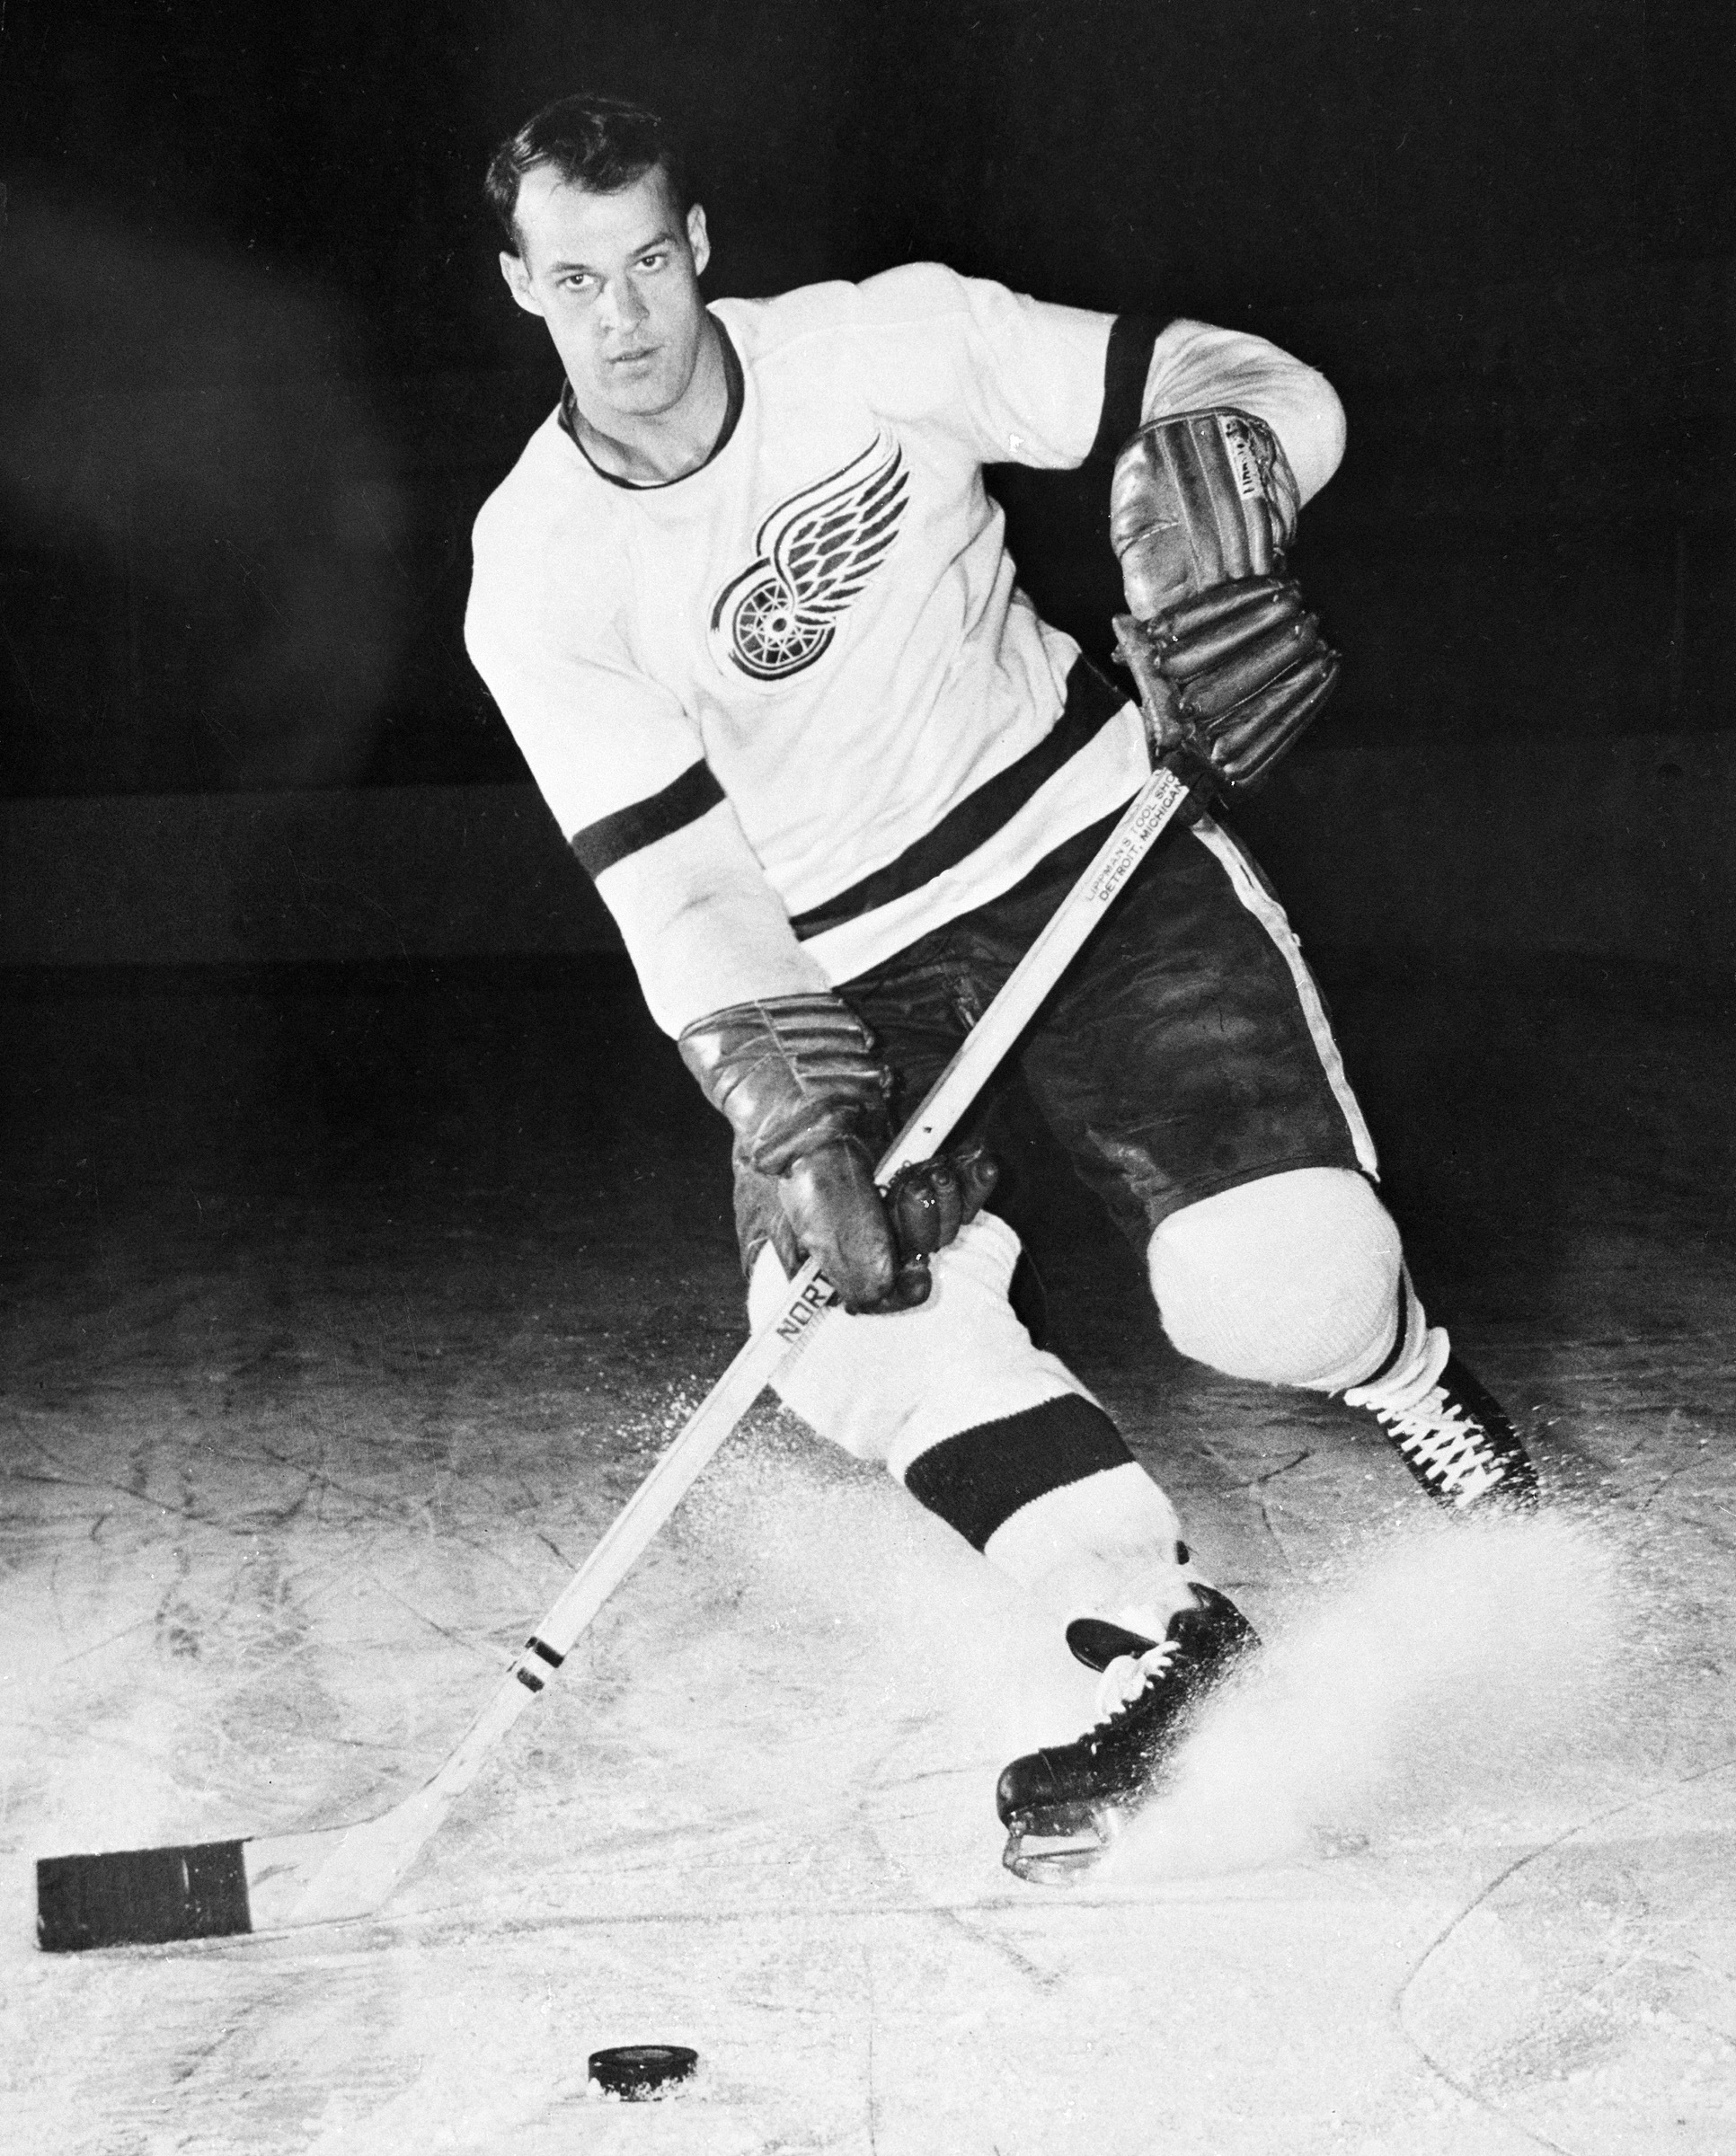 FILE - This is a 1956 file photo showing Detroit Red Wings hockey player Gordie Howe. Gordie Howe, the hockey great who set scoring records that stood for decades, has died. He was 88. Son Murray Howe confirmed the death Friday, June 10, 2016, texting to